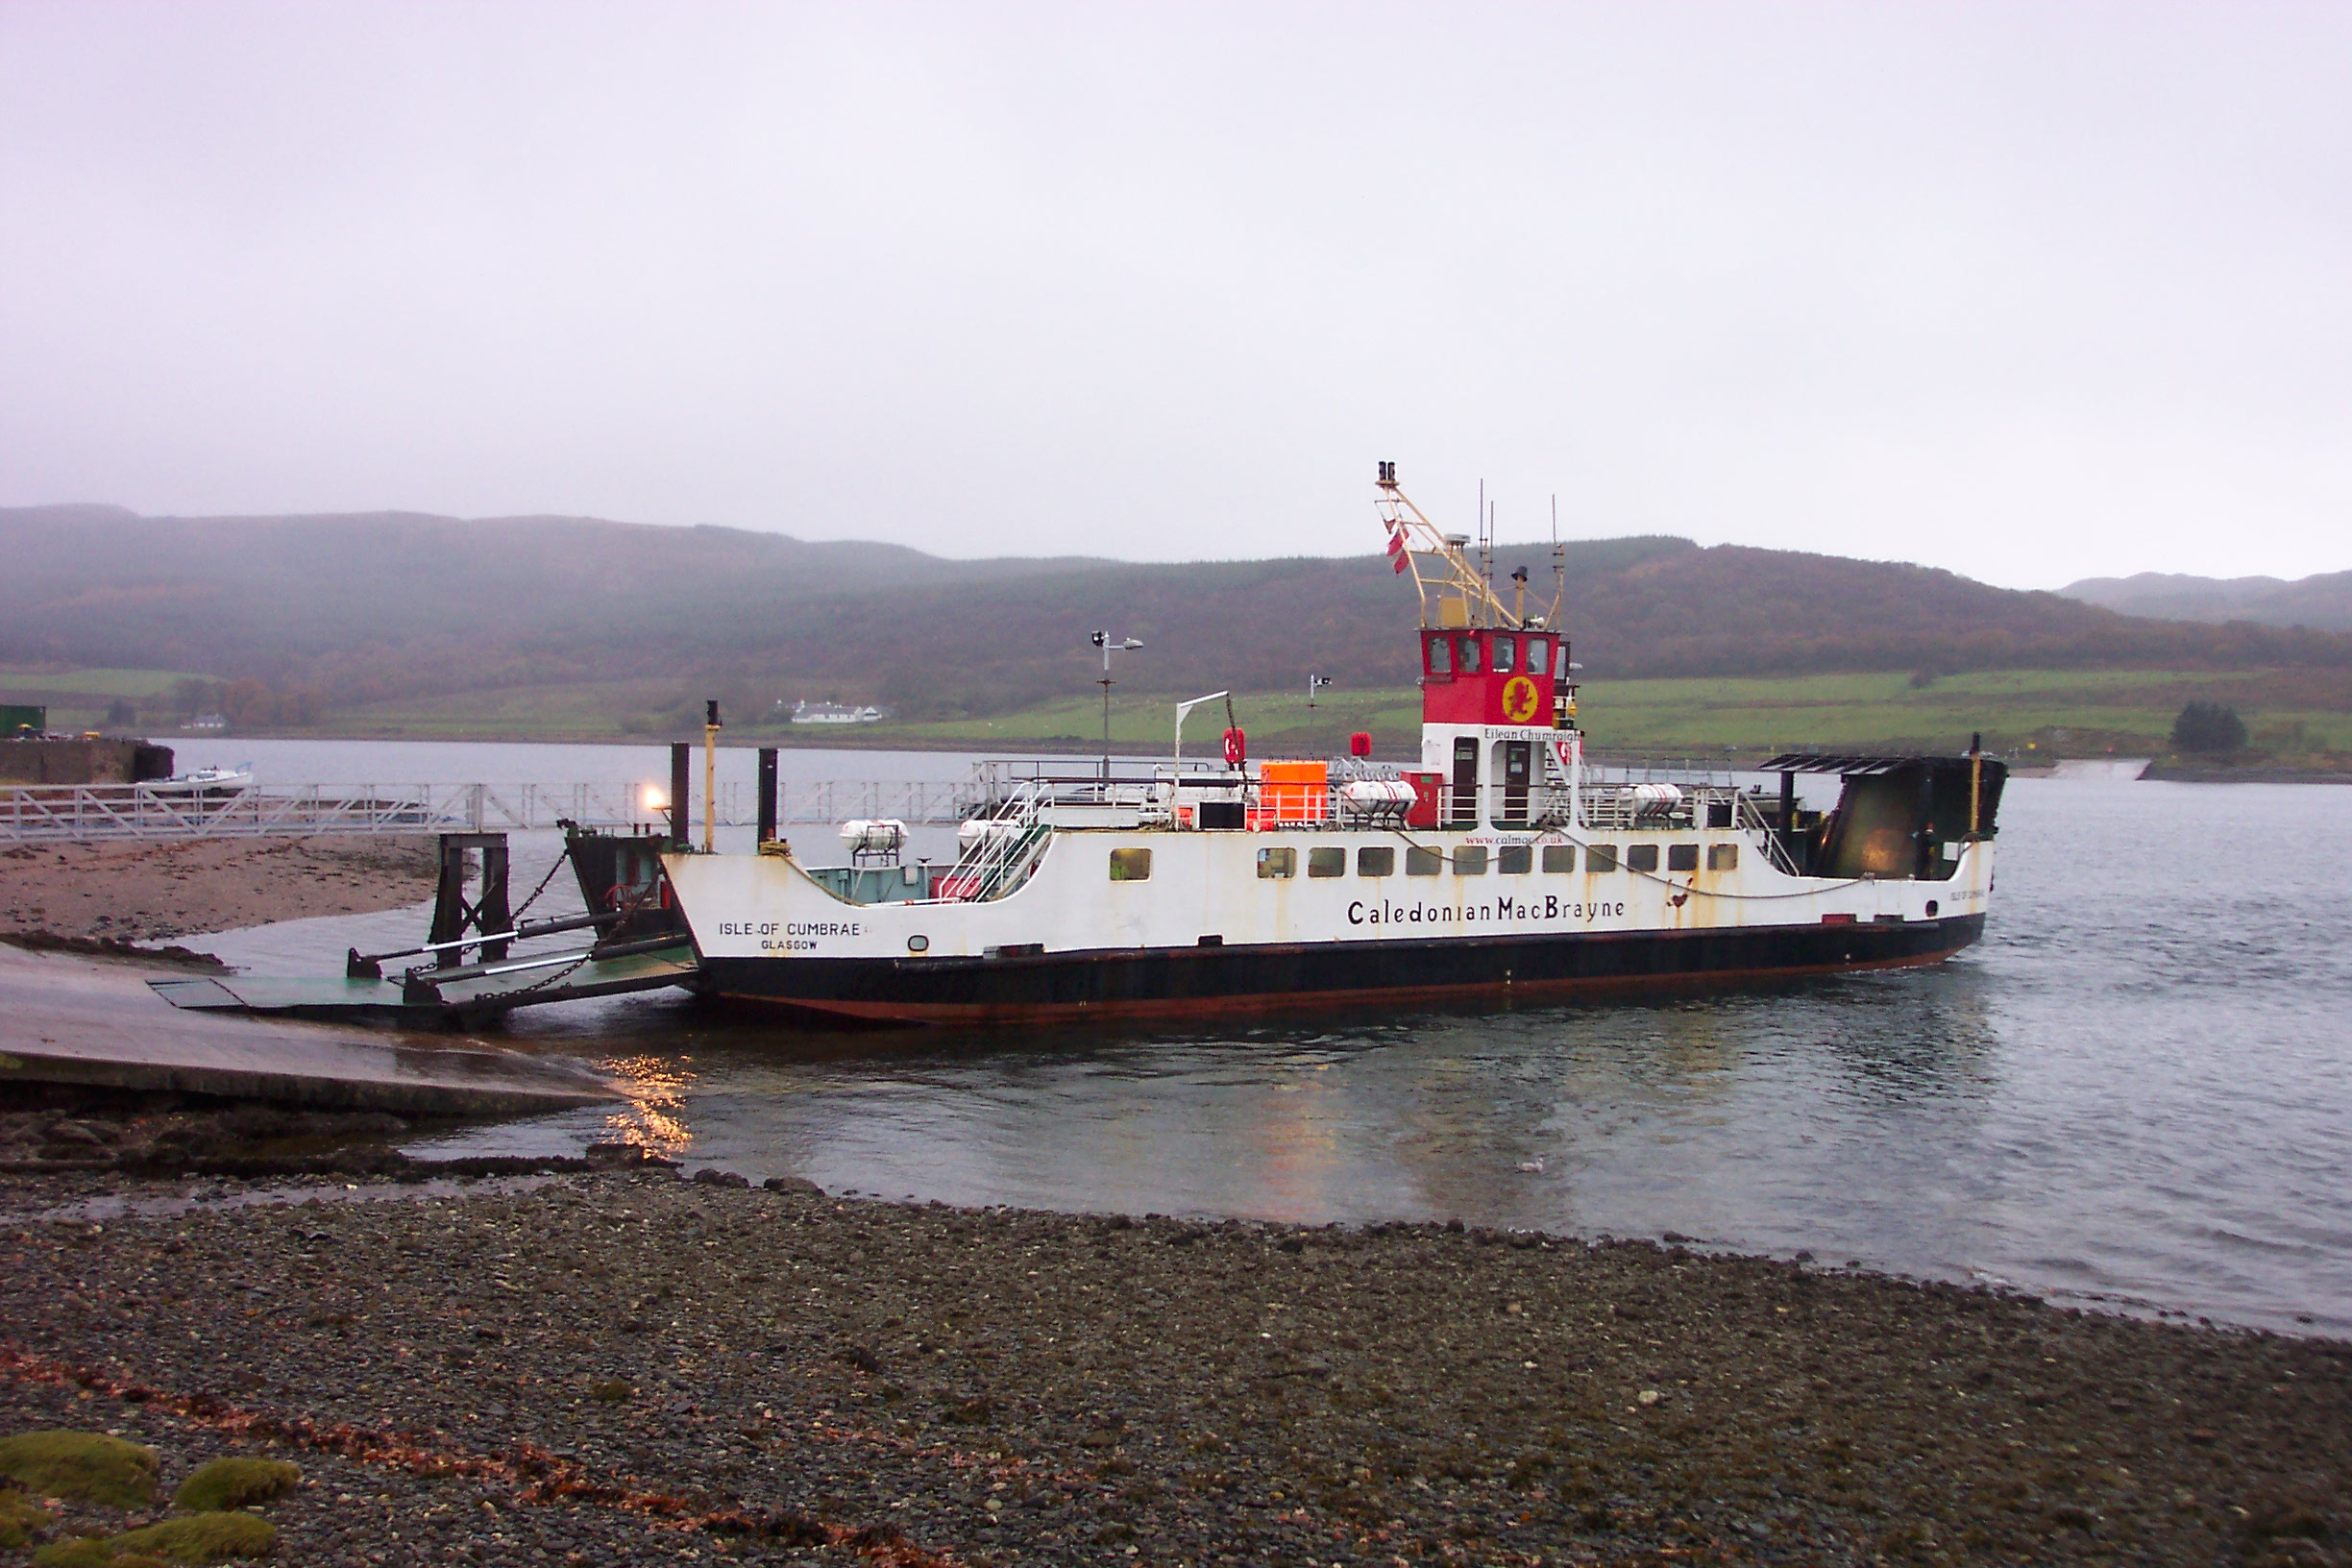 Isle of Cumbrae at Colintraive (Ships of CalMac)